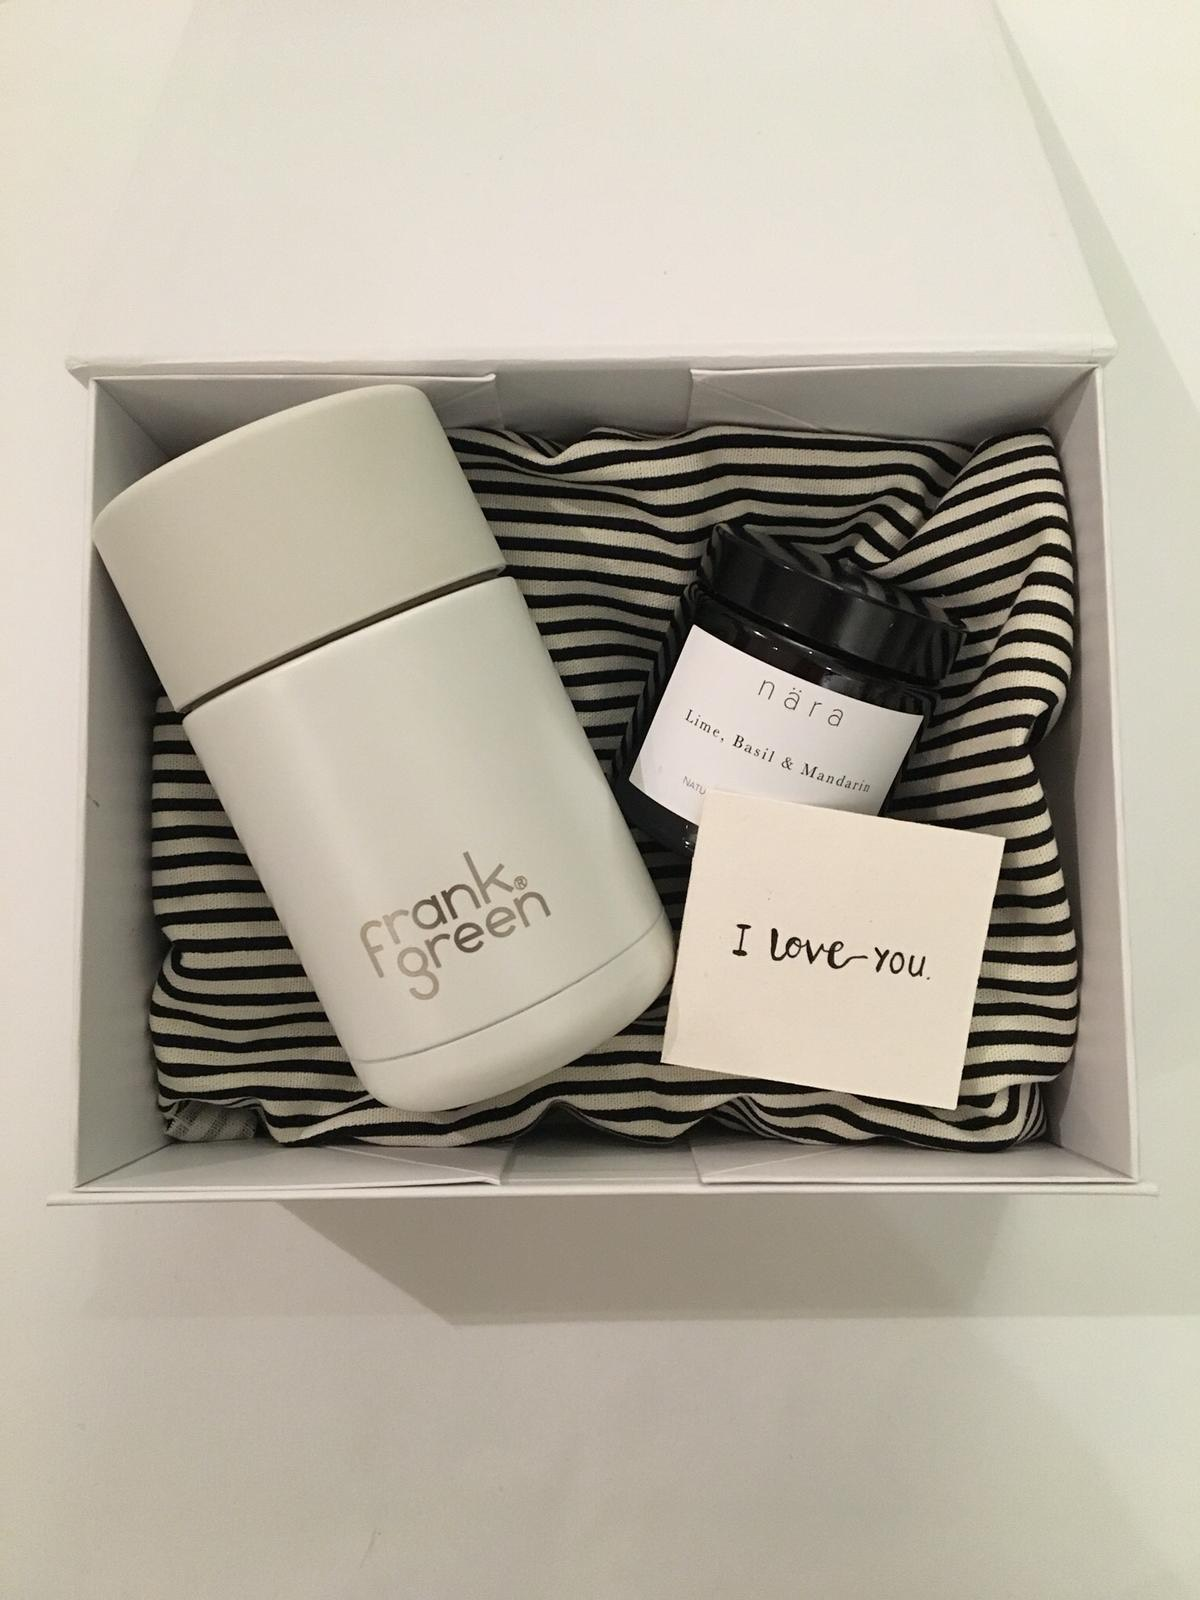 Get Away £43.00 - For the one who needs to Get Away, help your Valentine escape the mundane with this romantic gift. With a Frank Green cup and Pharmacy Candle, presented in a classic nära gift box and with the option to add a personal message.